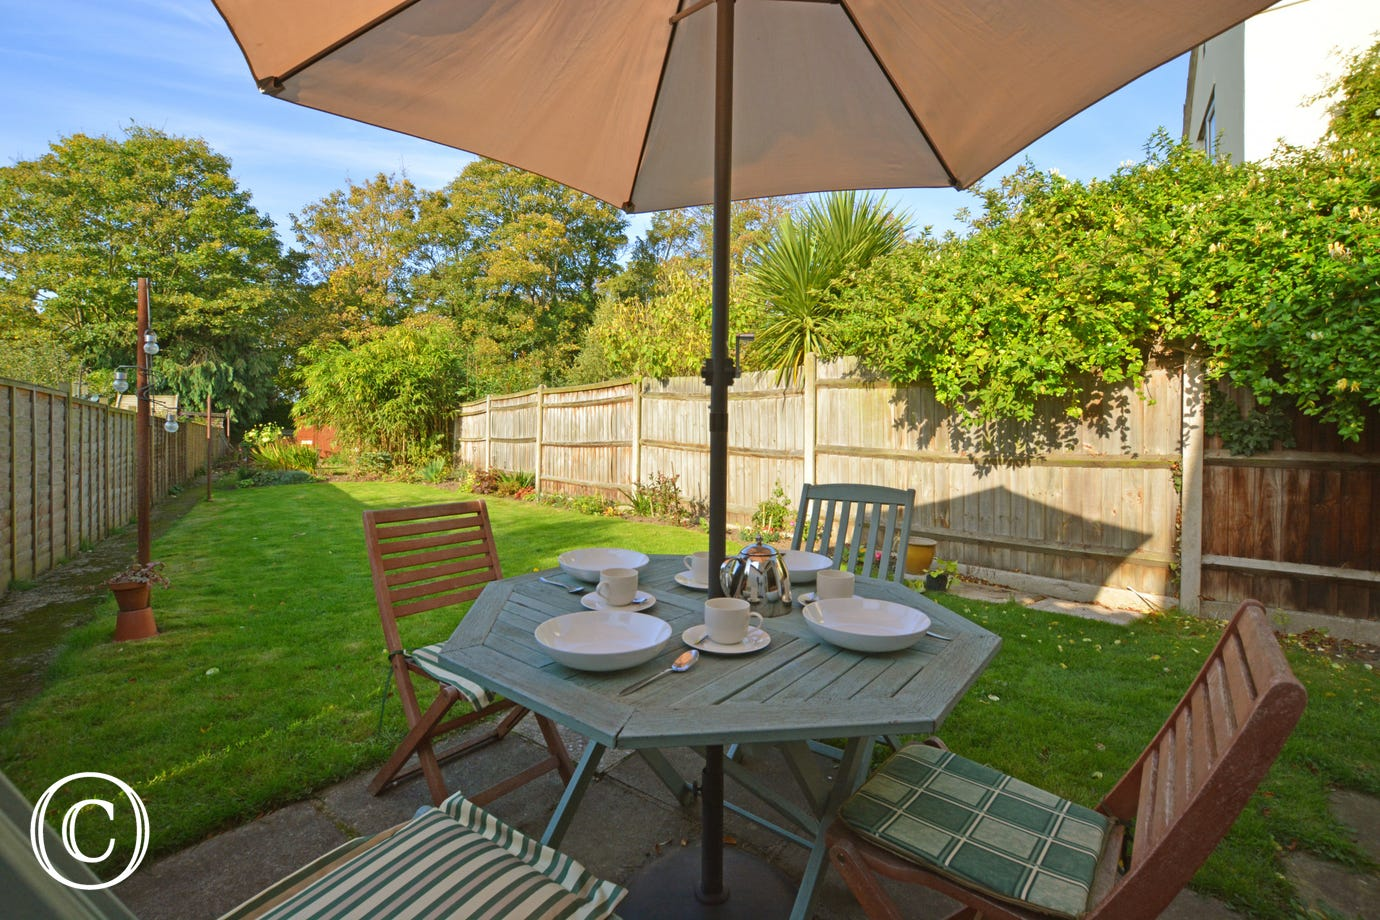 Patio area with garden furniture